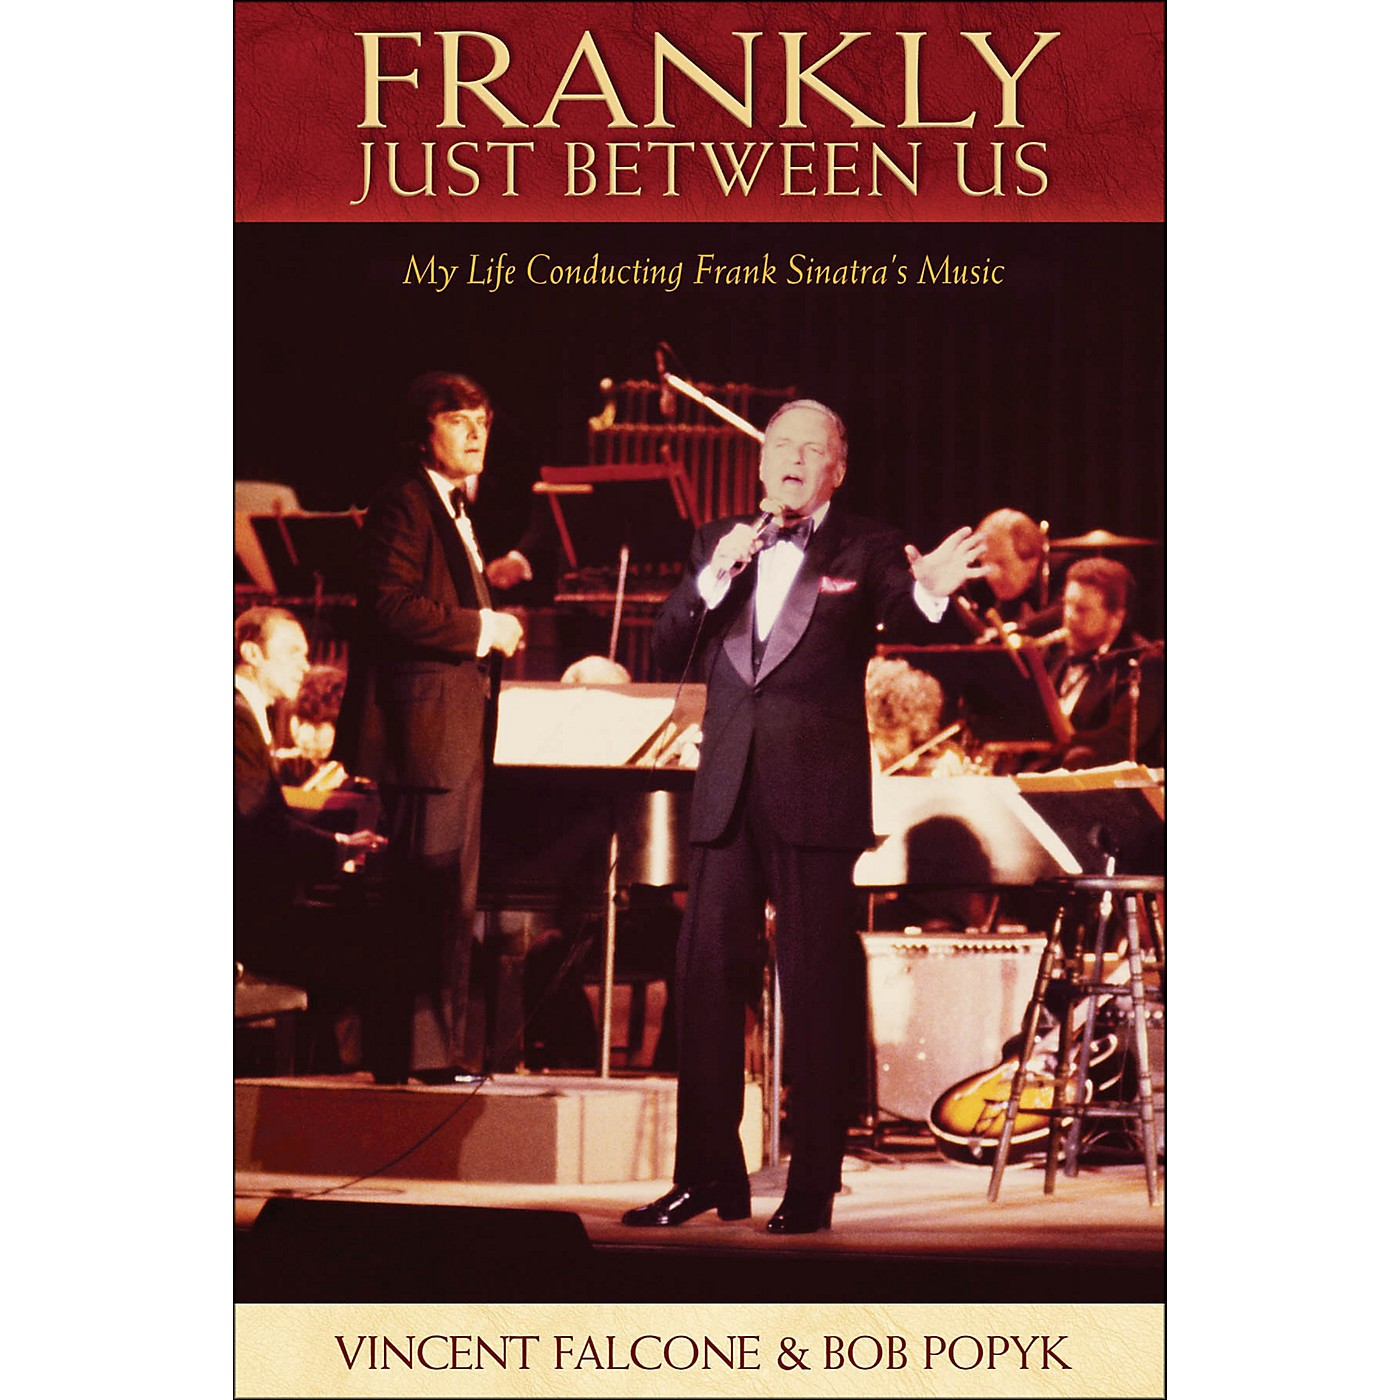 Hal Leonard Frankly - Just Between Us: My Life Conducting Frank Sinatra's Music thumbnail